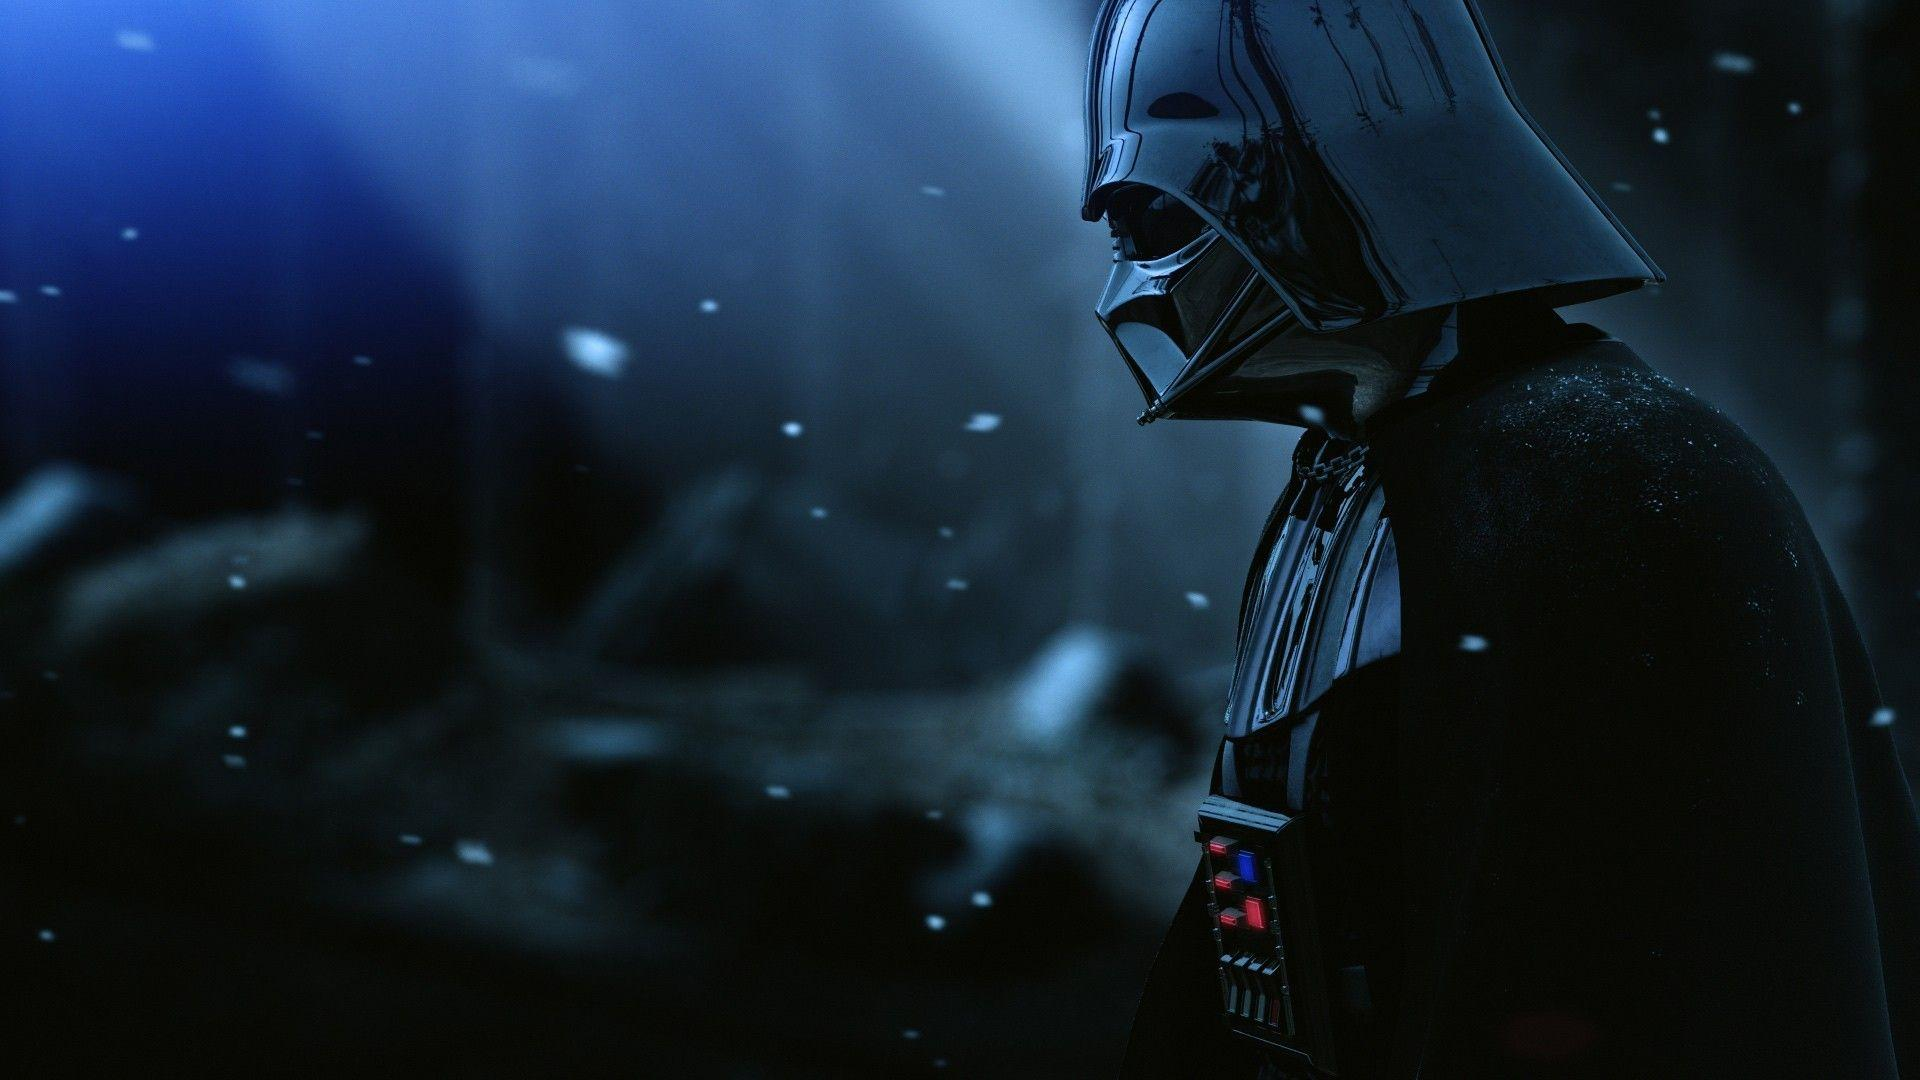 Hd Star Wars Wallpapers Wallpaper Cave